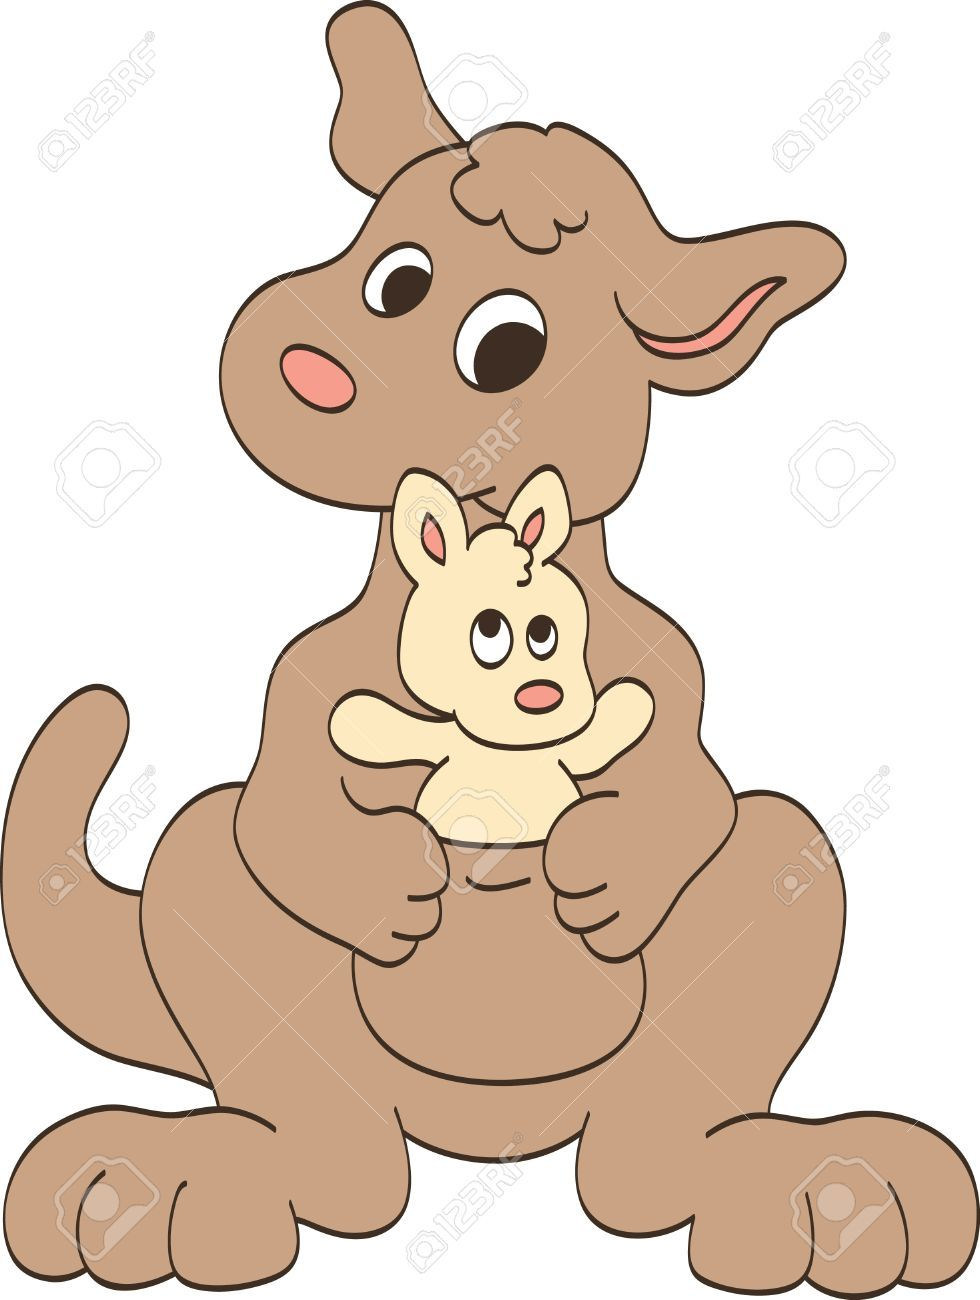 Mother and baby animals cartoon clipart for kids clip black and white library Stock Vector | animal cartoons | Mother, baby animals ... clip black and white library